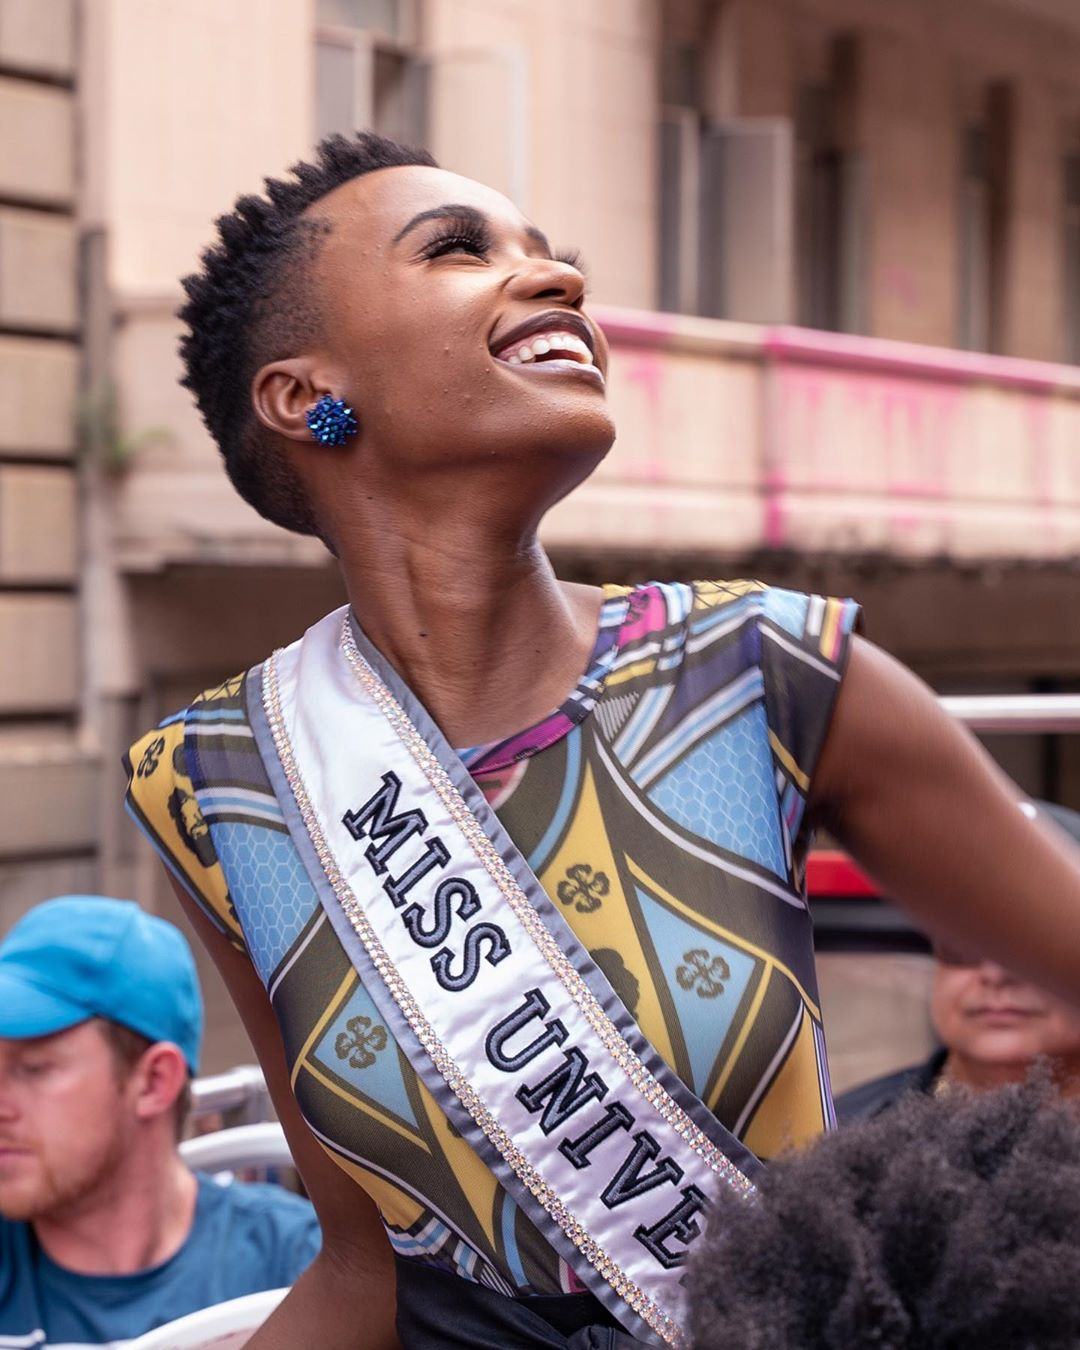 OOK: Miss Universe Zozibini Tunzi to parade through Cape Town on 'Wave of Love'